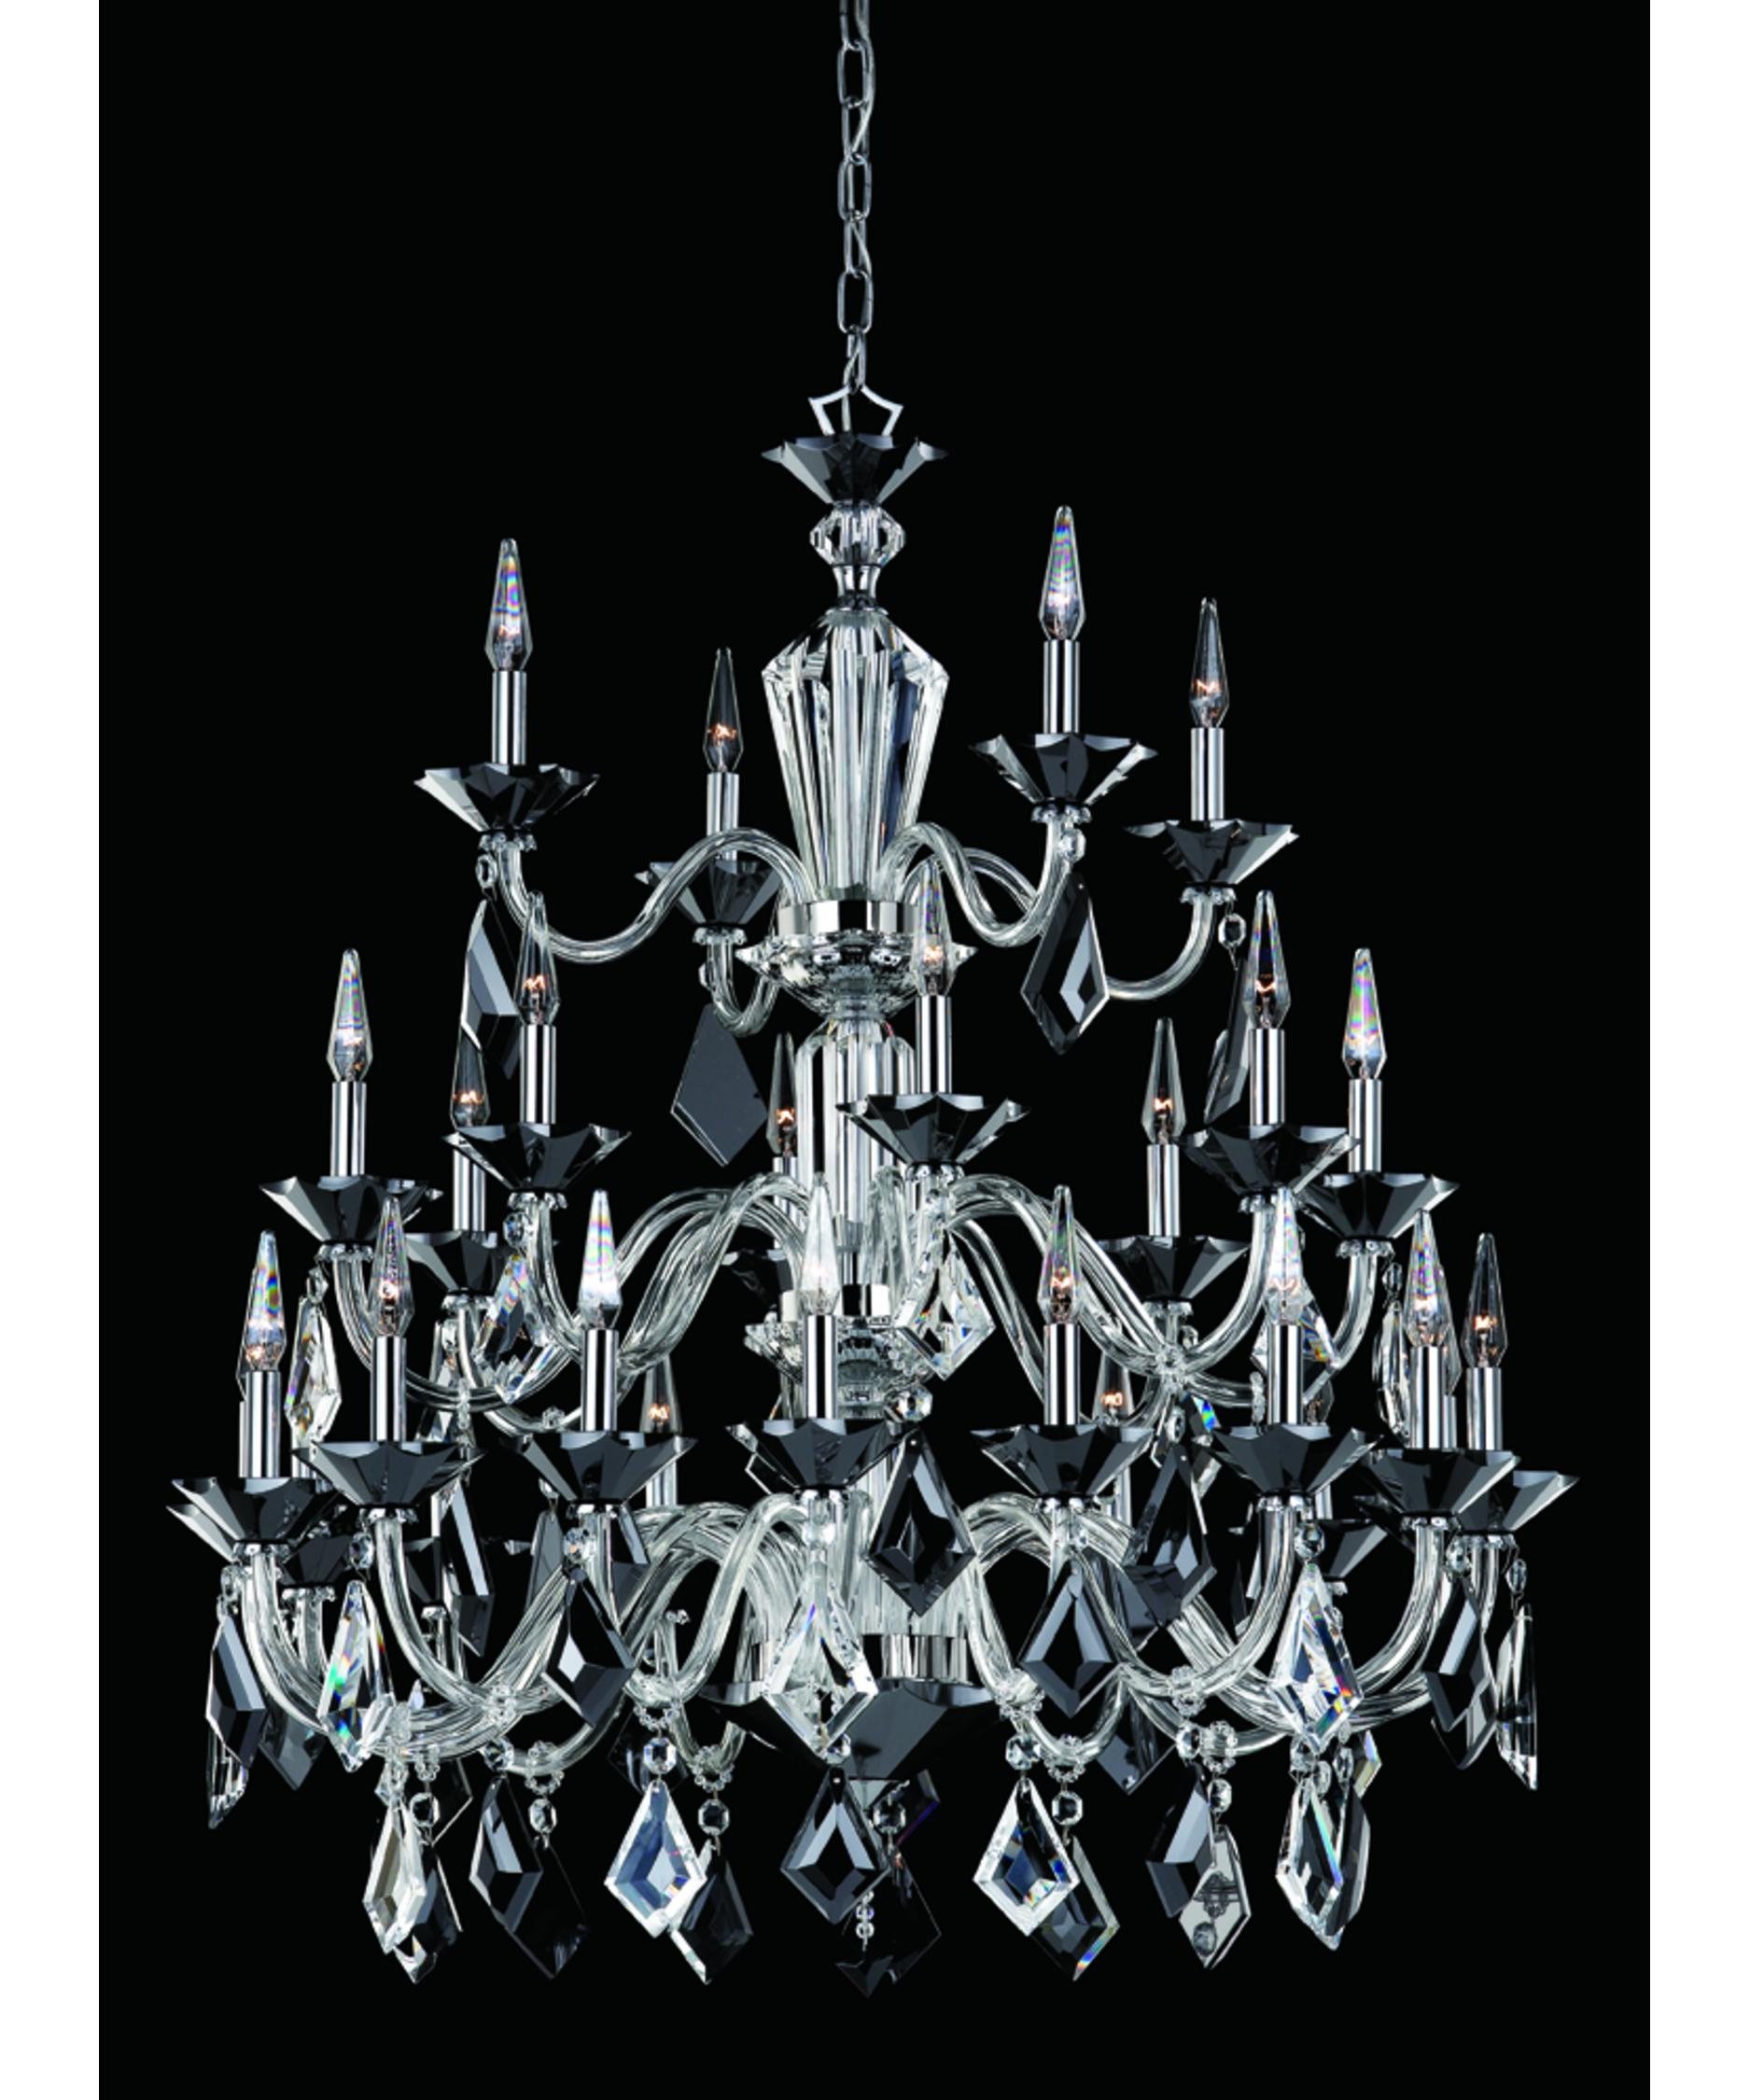 nulco lighting  diamond  inch wide  light chandelier  - shown in chrome finish with black and clear crystals